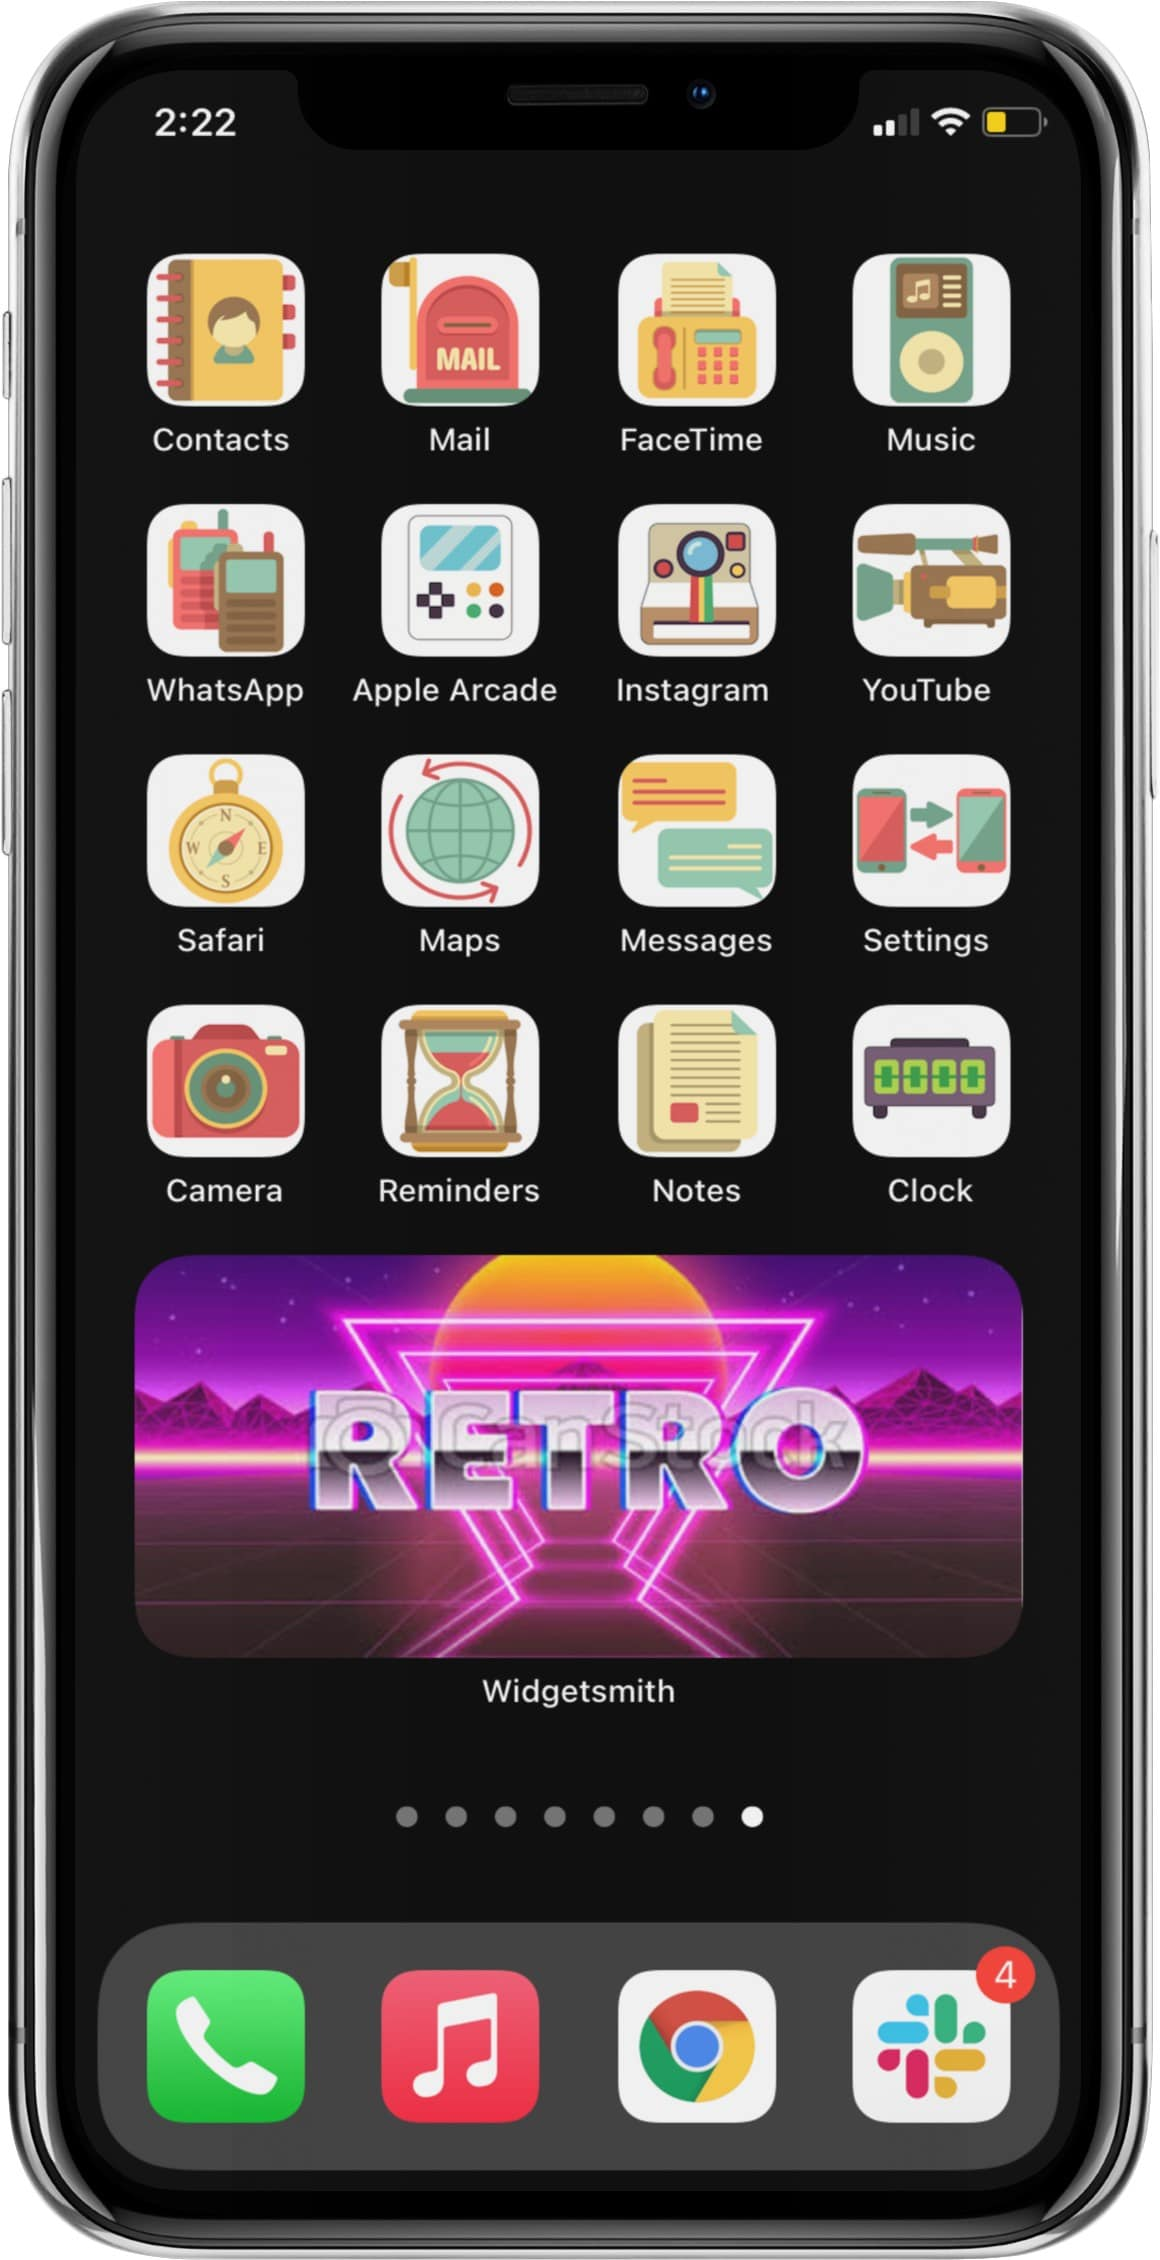 retro aesthetic app icon set for iphone runnng ios 14